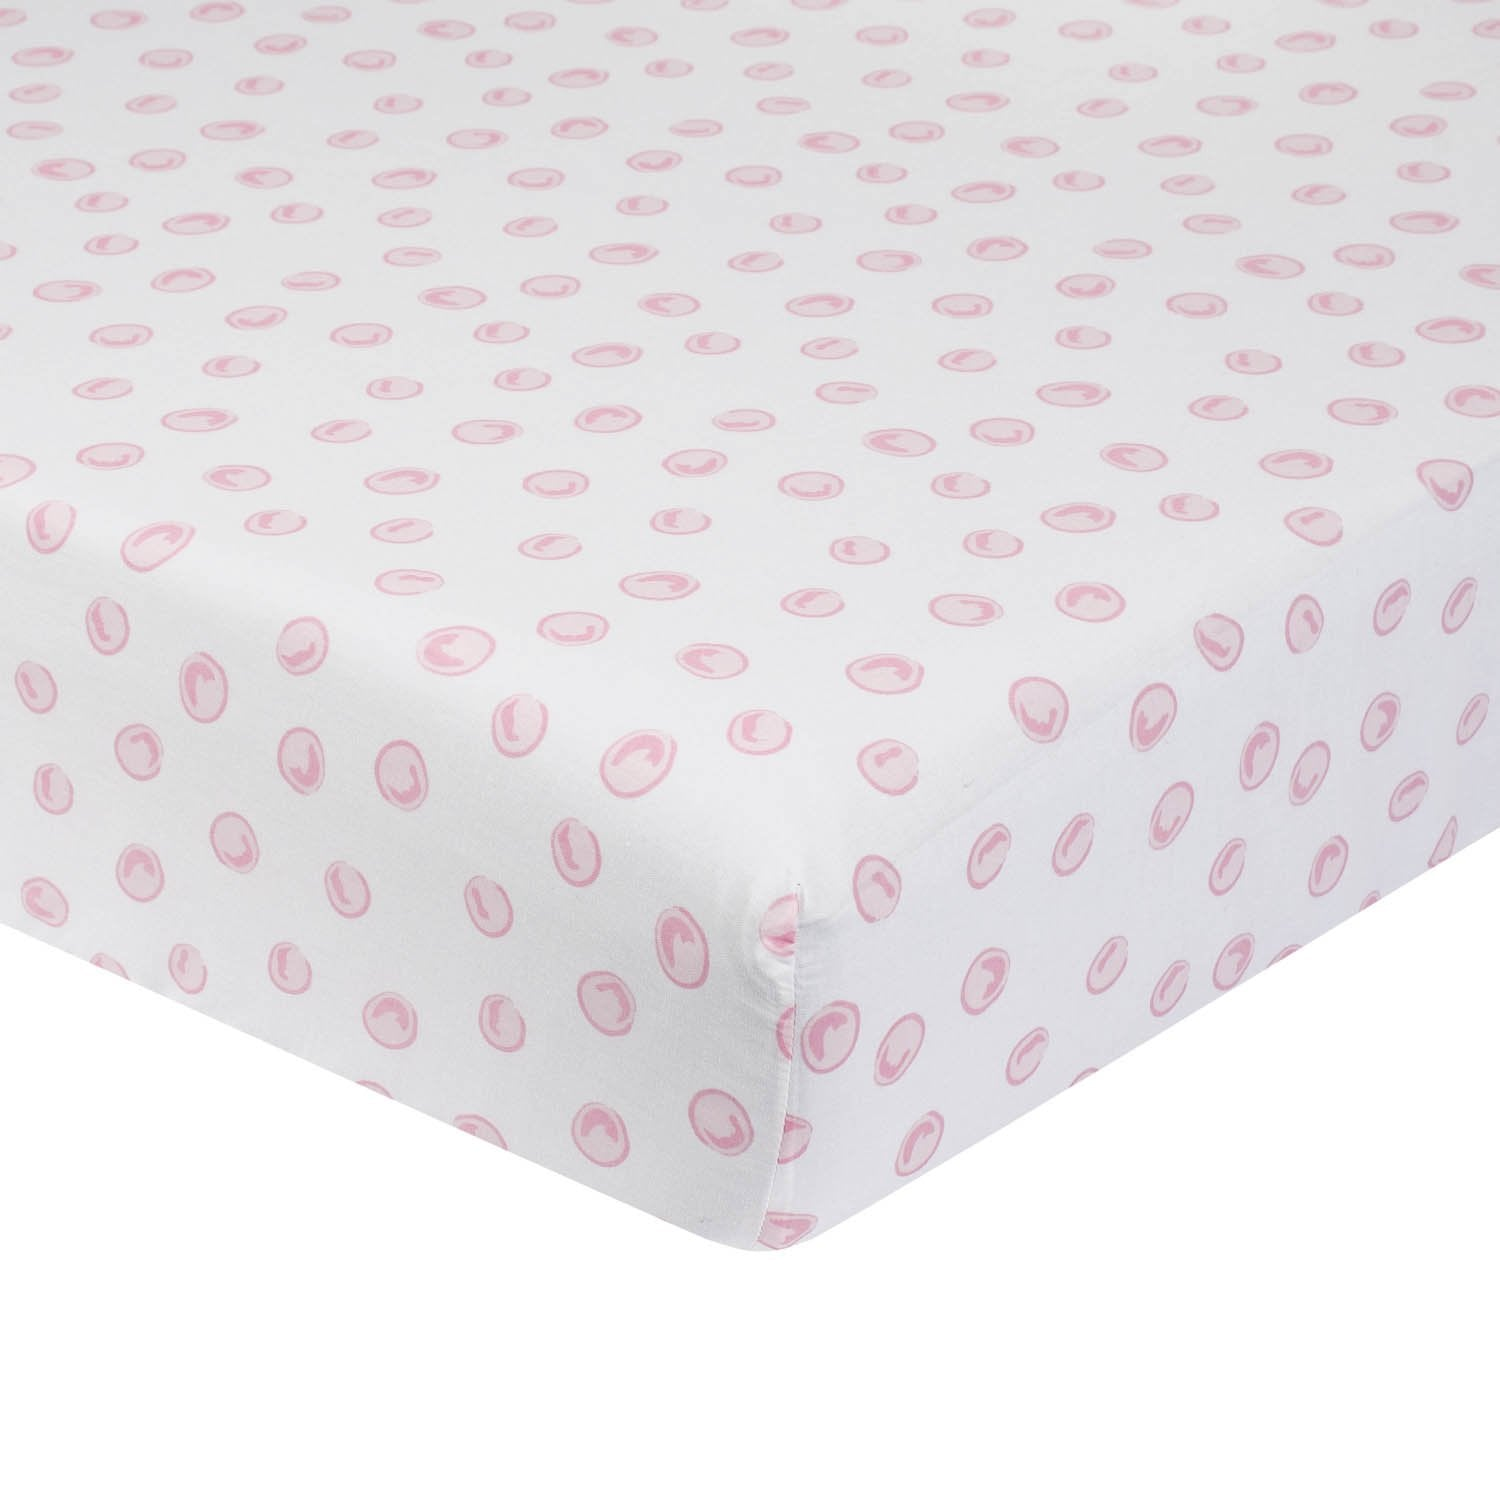 Just Born One World Collection Polka Dot Fitted Crib Sheet - Blossom-Gerber Childrenswear